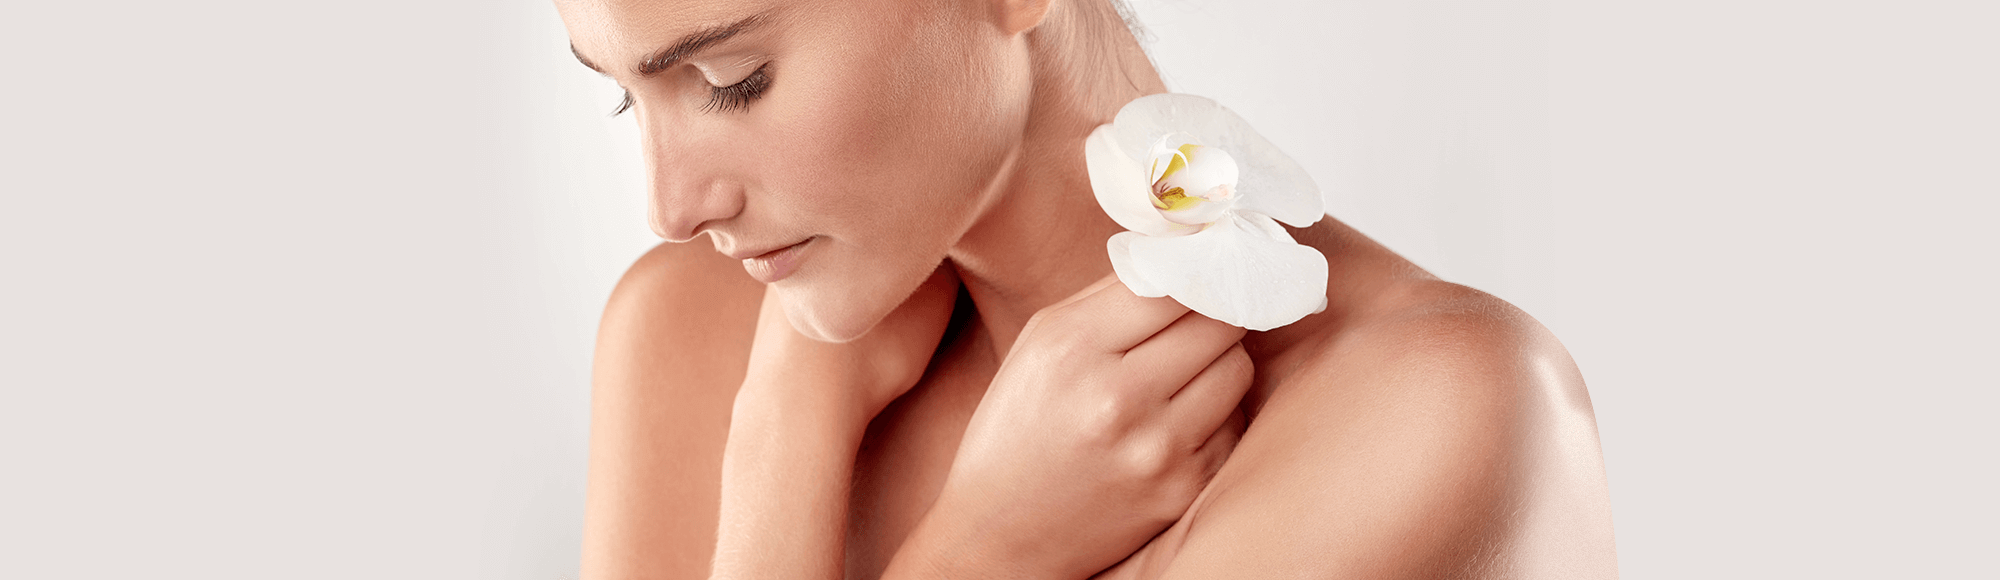 Skin Care George Town, Grand Cayman | Beyond Basics Medical Day Spa